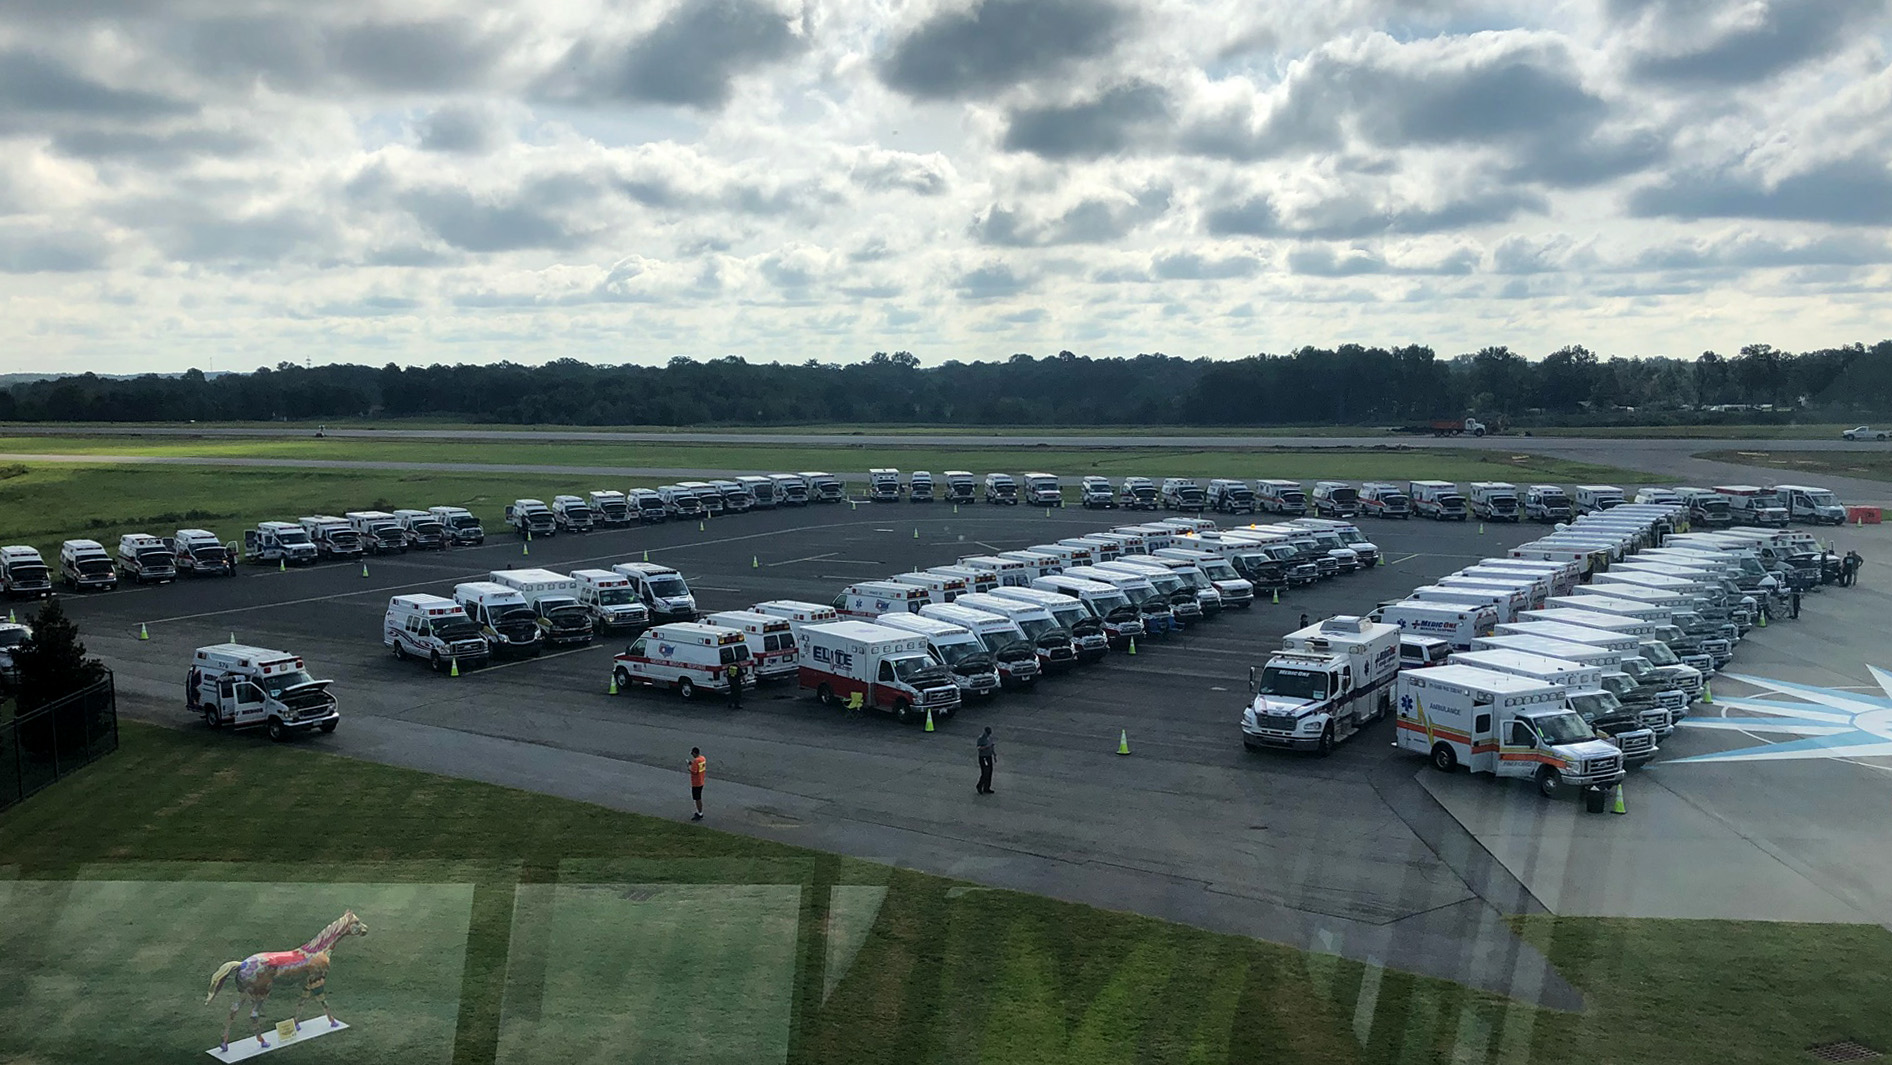 The general aviation airport at Spartanburg, South Carolina, is a staging ground for emergency responders and disaster-relief workers providing aid in the wake of Hurricane Florence. Photo courtesy of Terry Connorton.